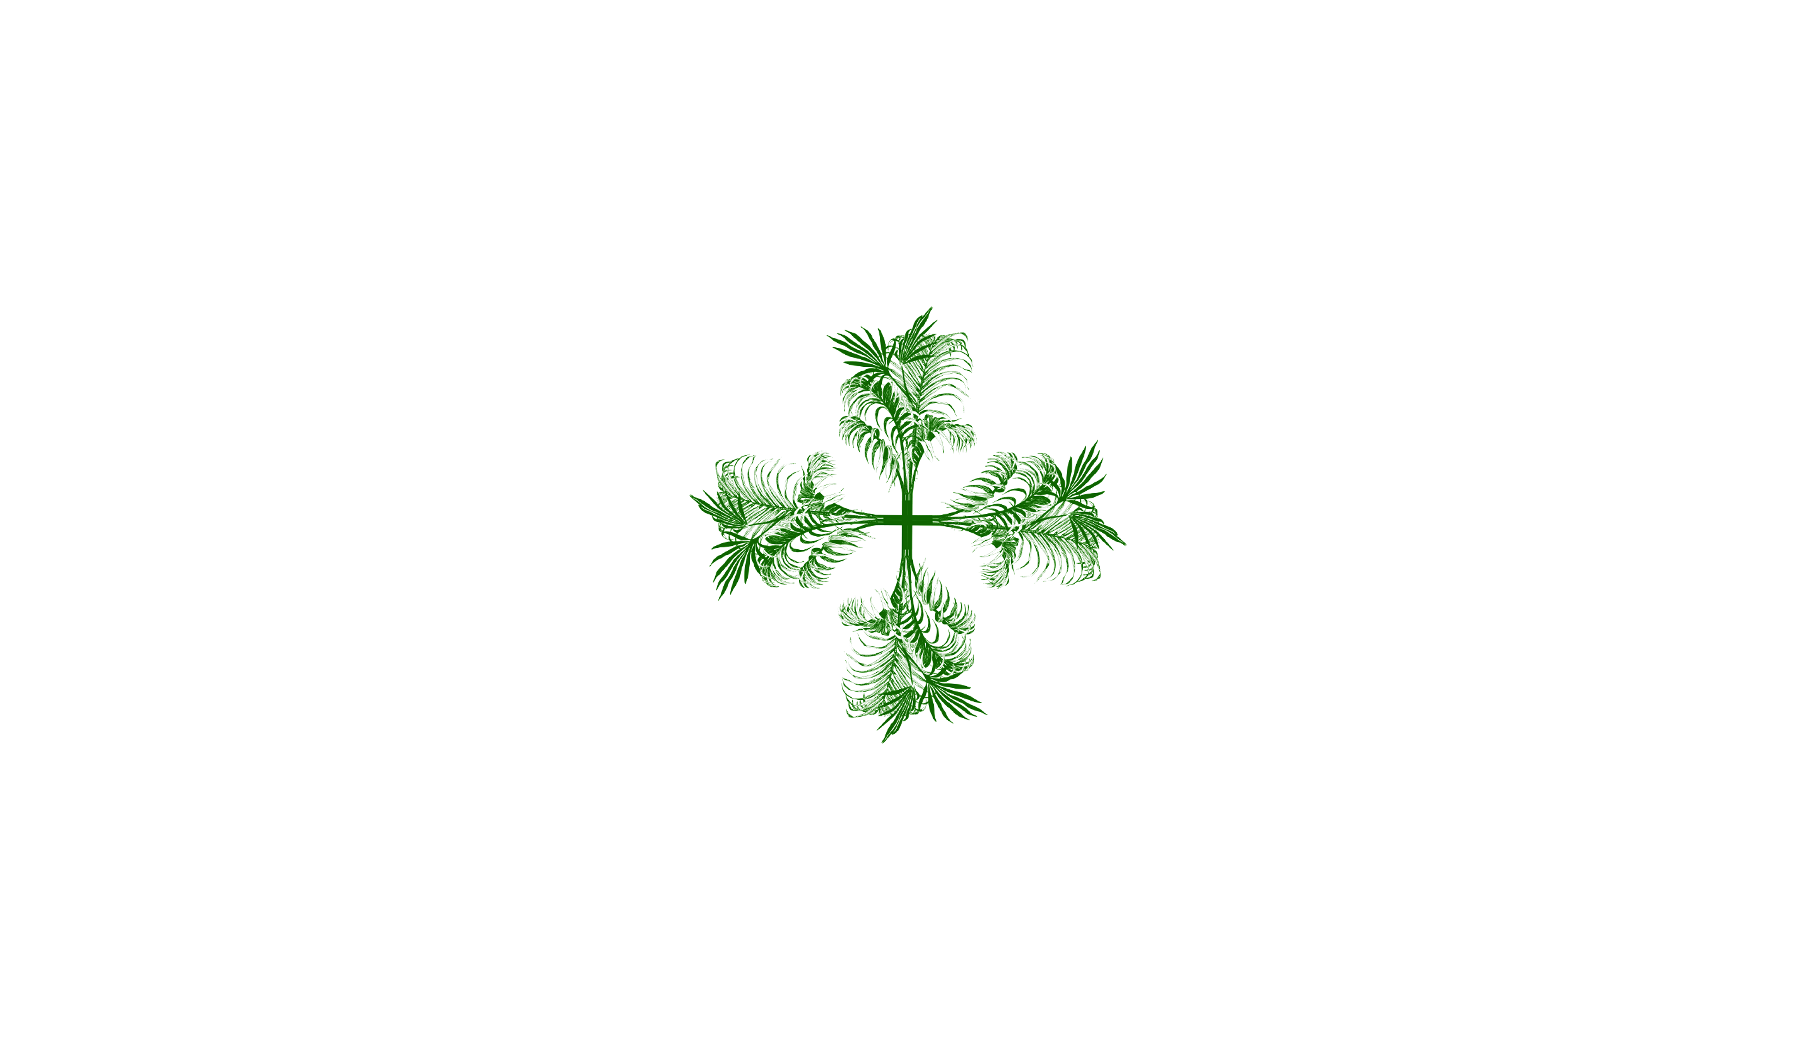 green-cross-420-palms-weed-shop-logo-design-by-ethan-solouki